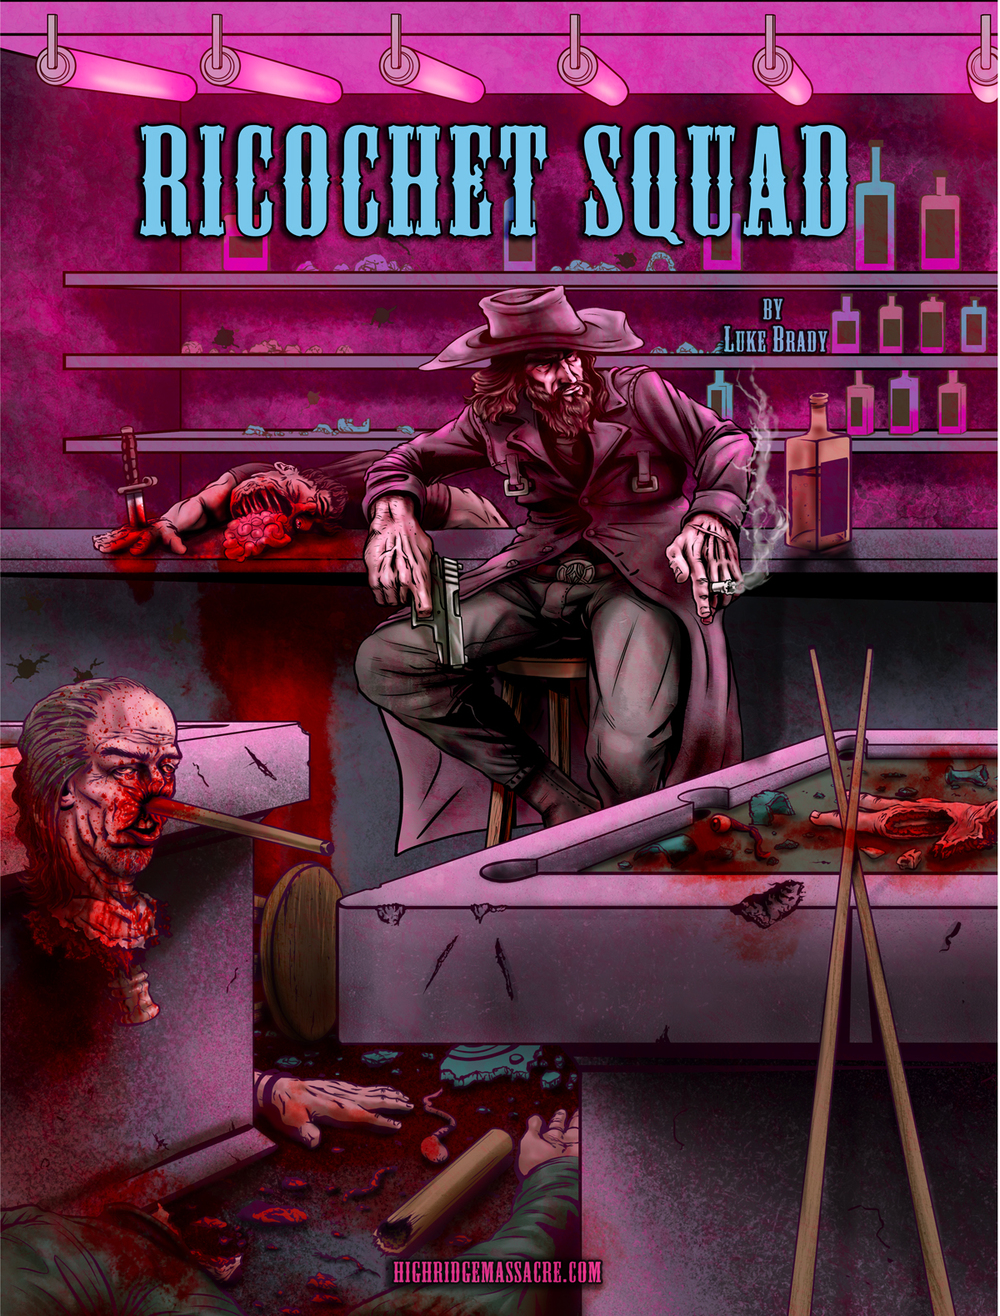 Hendrik The Torpedo - Ricochet Squad Chapter 1 - Art by Riley Schmitz